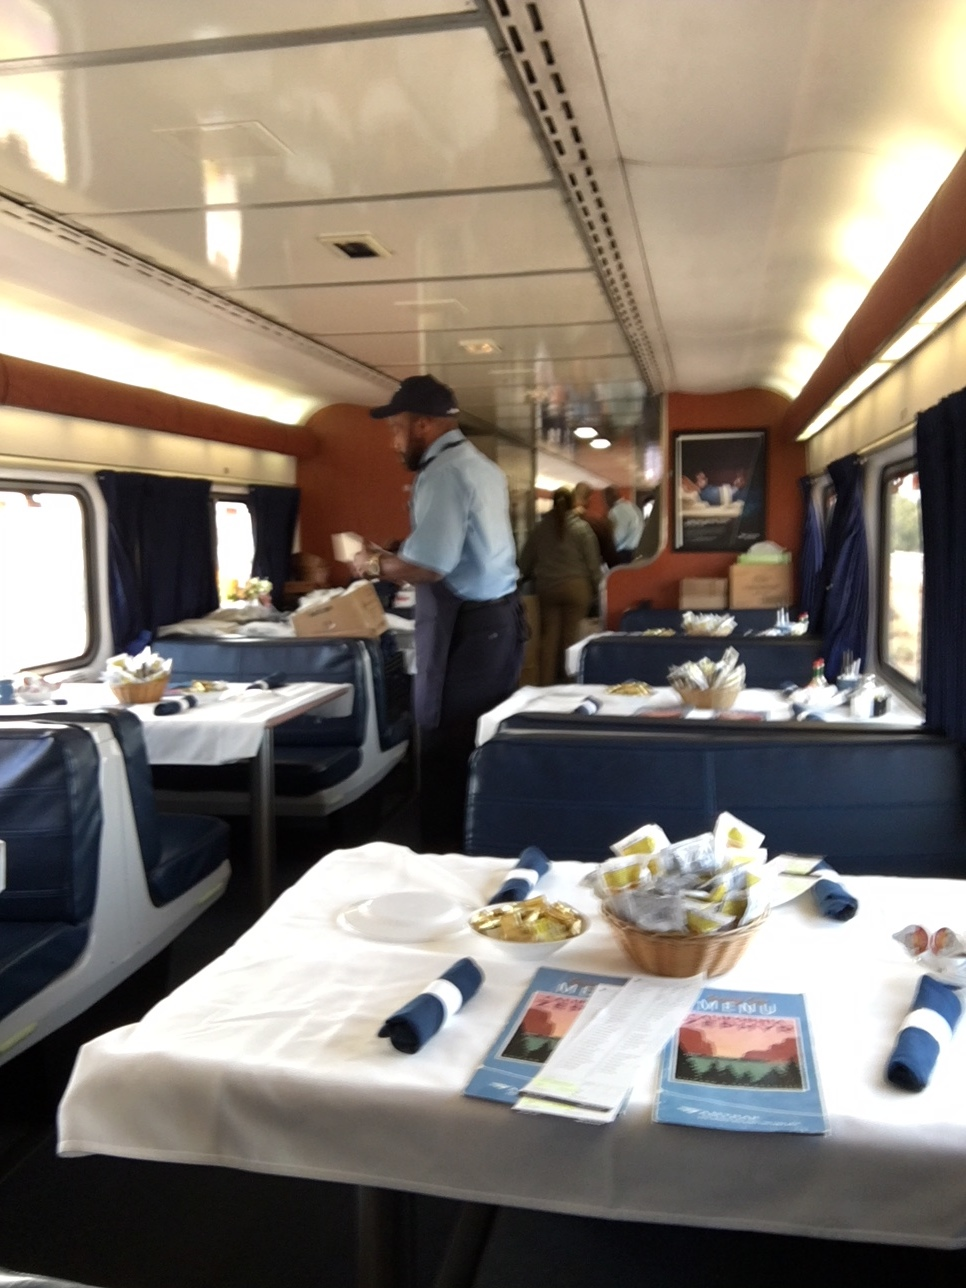 A blurry shot of the dining car - oops, train was bumpy here.